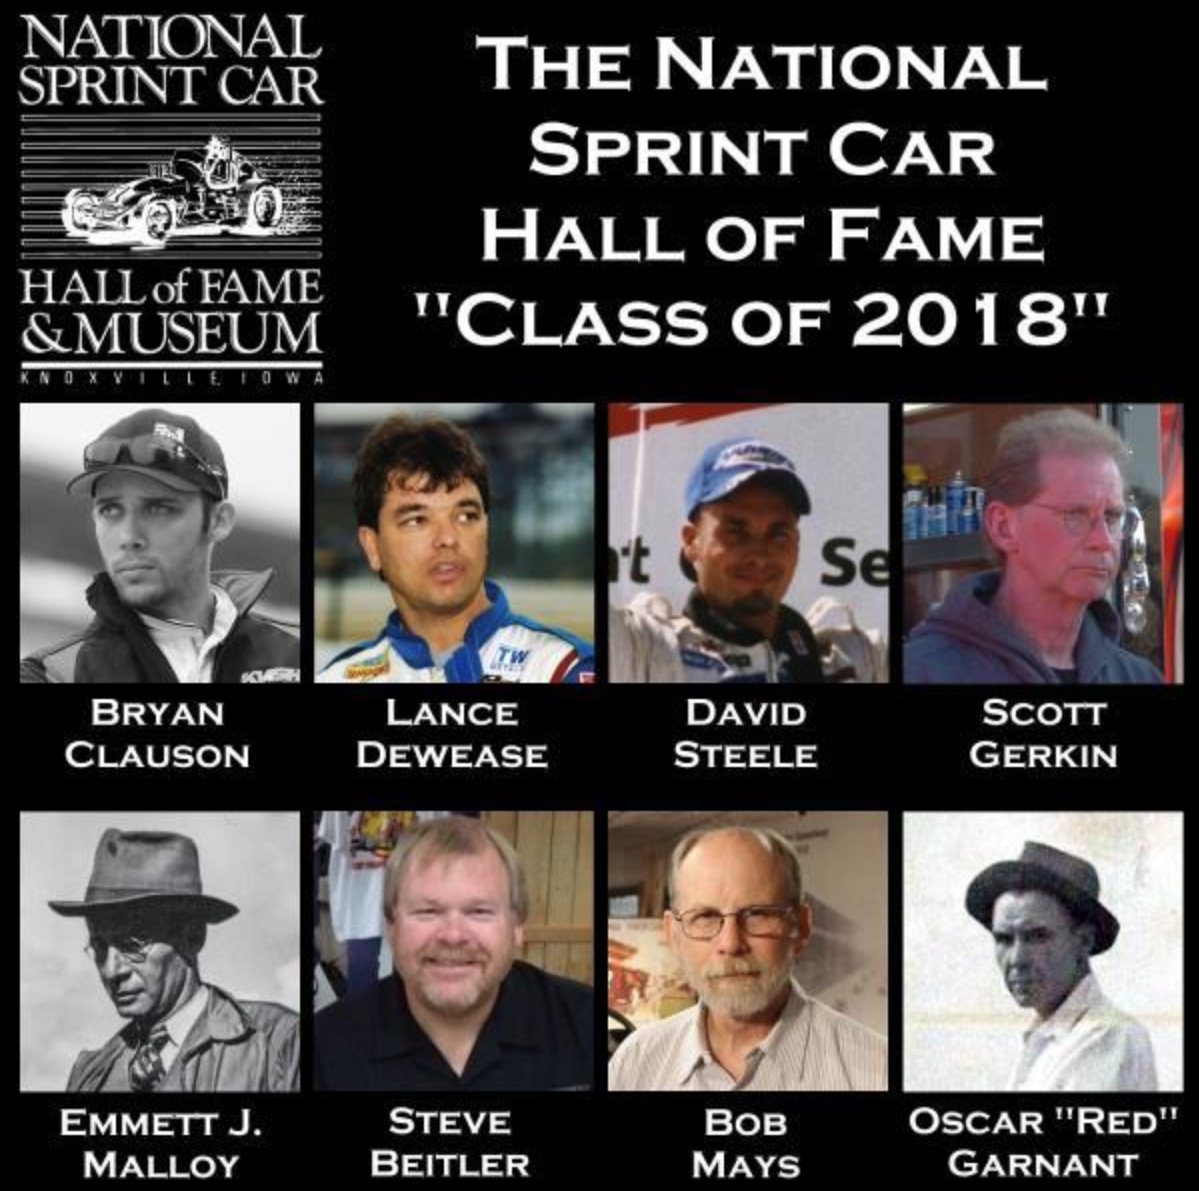 2018 National Sprint Car Hall of Fame class